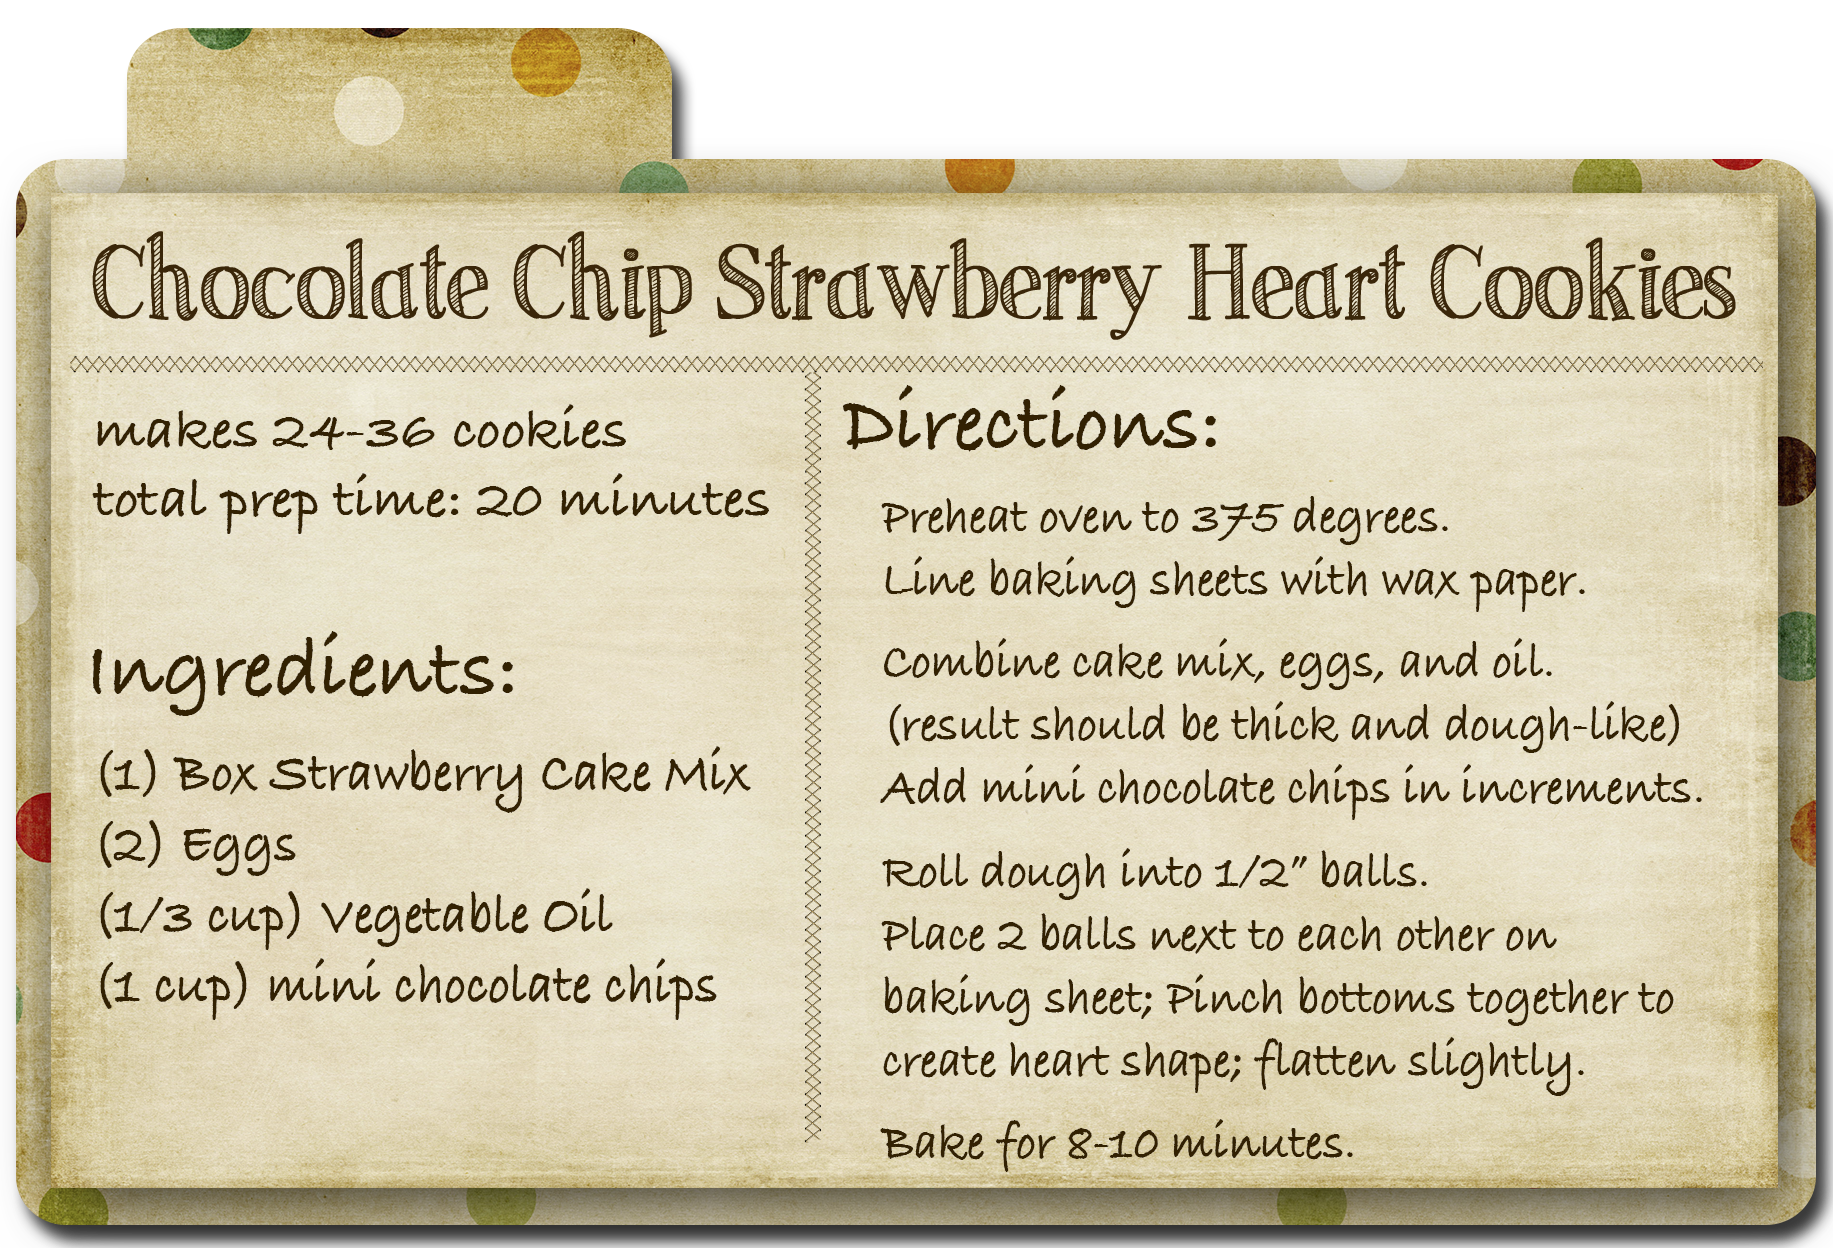 Easy recipes for choc chip cookies - Food for health recipes